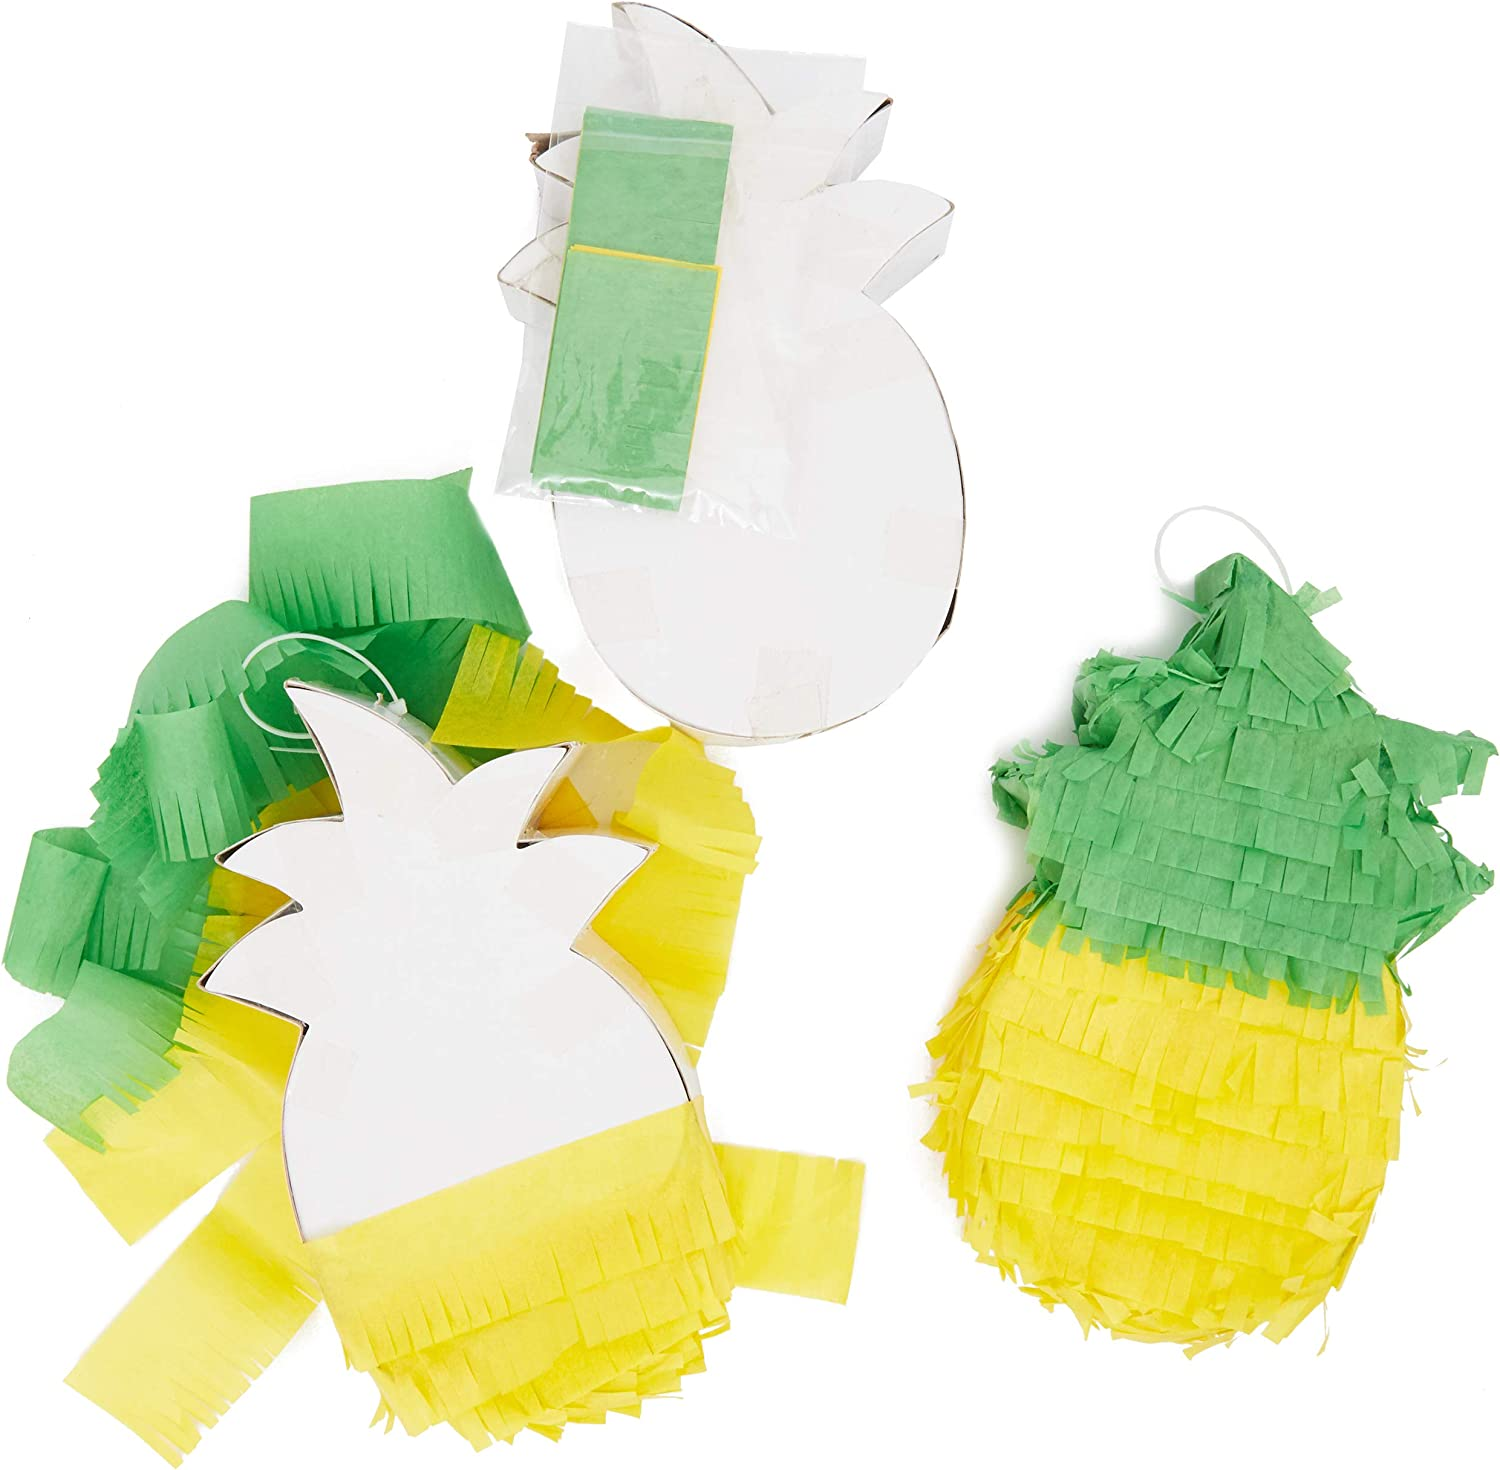 Mini Pineapple DIY Pinata Craft Kit for Birthday Party (7.5 x 4.5 in, 3 Pack)